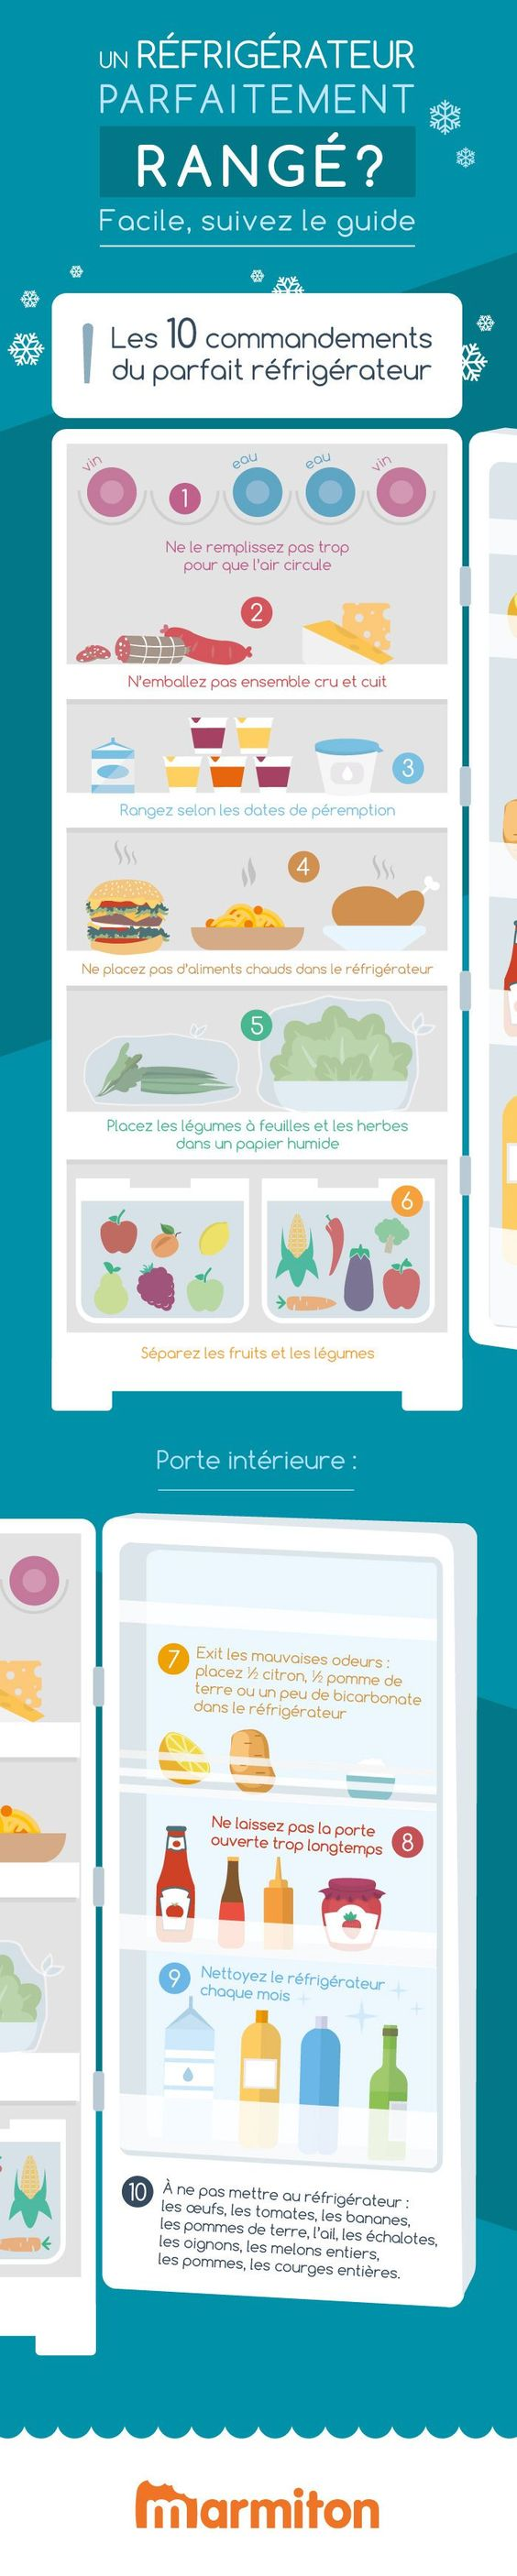 infographie bien ranger son r frig rateur astuces pour ranger son frigo id es recettes. Black Bedroom Furniture Sets. Home Design Ideas